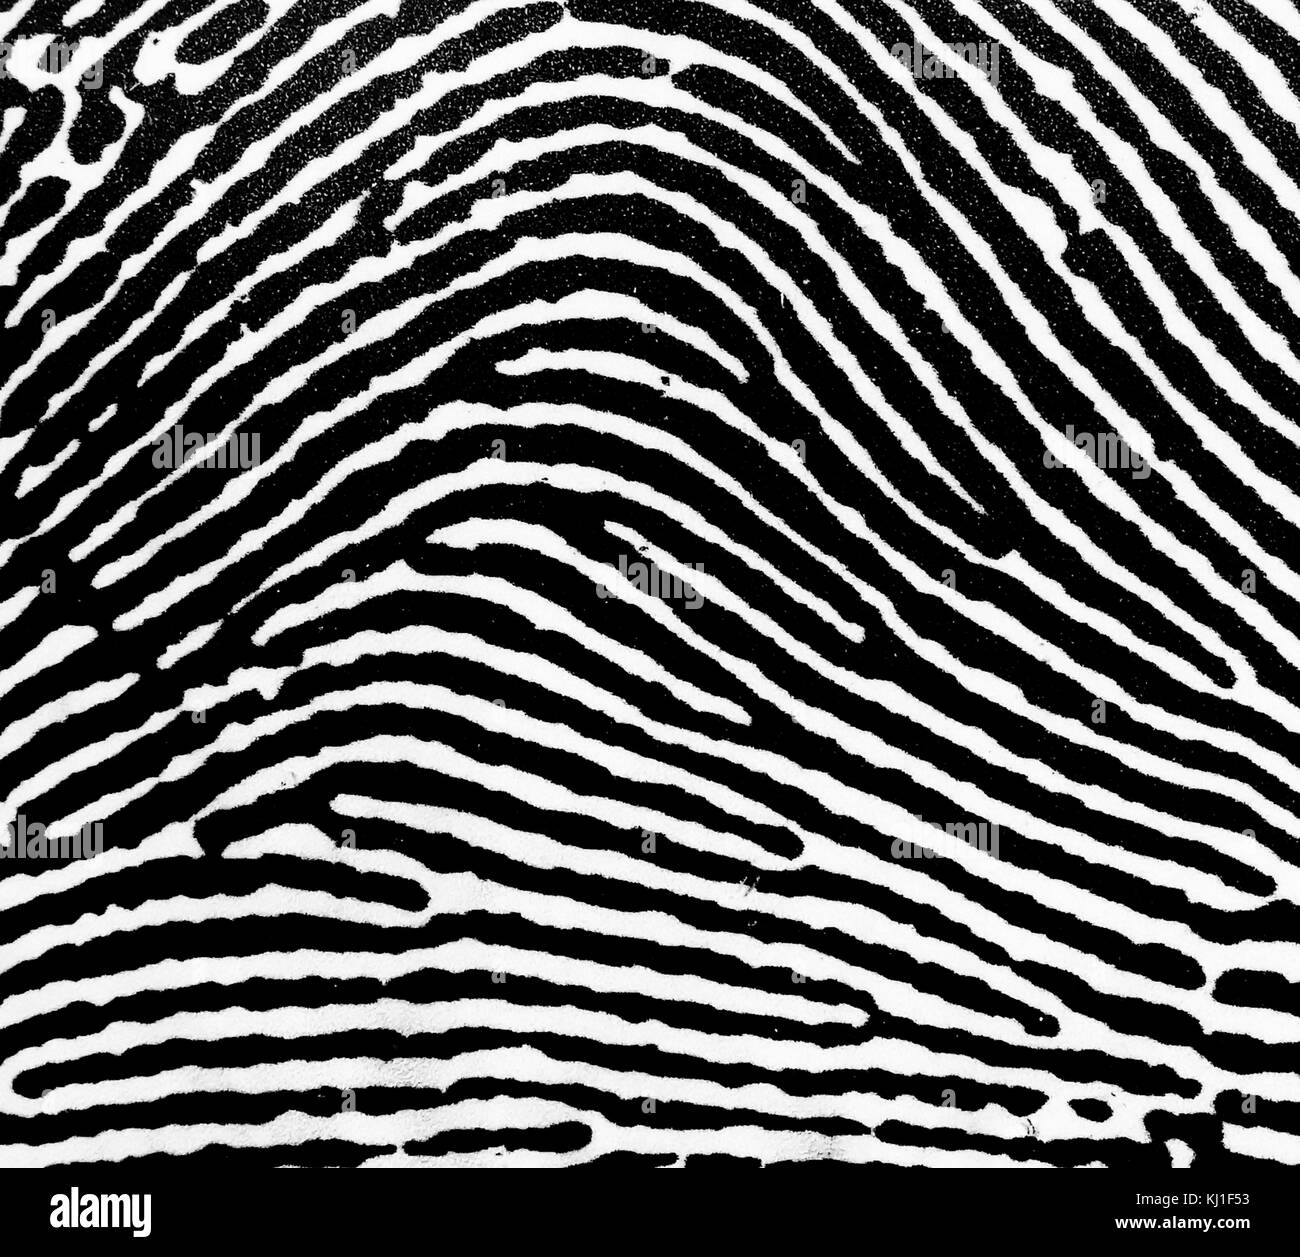 A Loop fingerprint. Fingerprints are an impression left by the friction ridges of a human finger. The recovery of - Stock Image